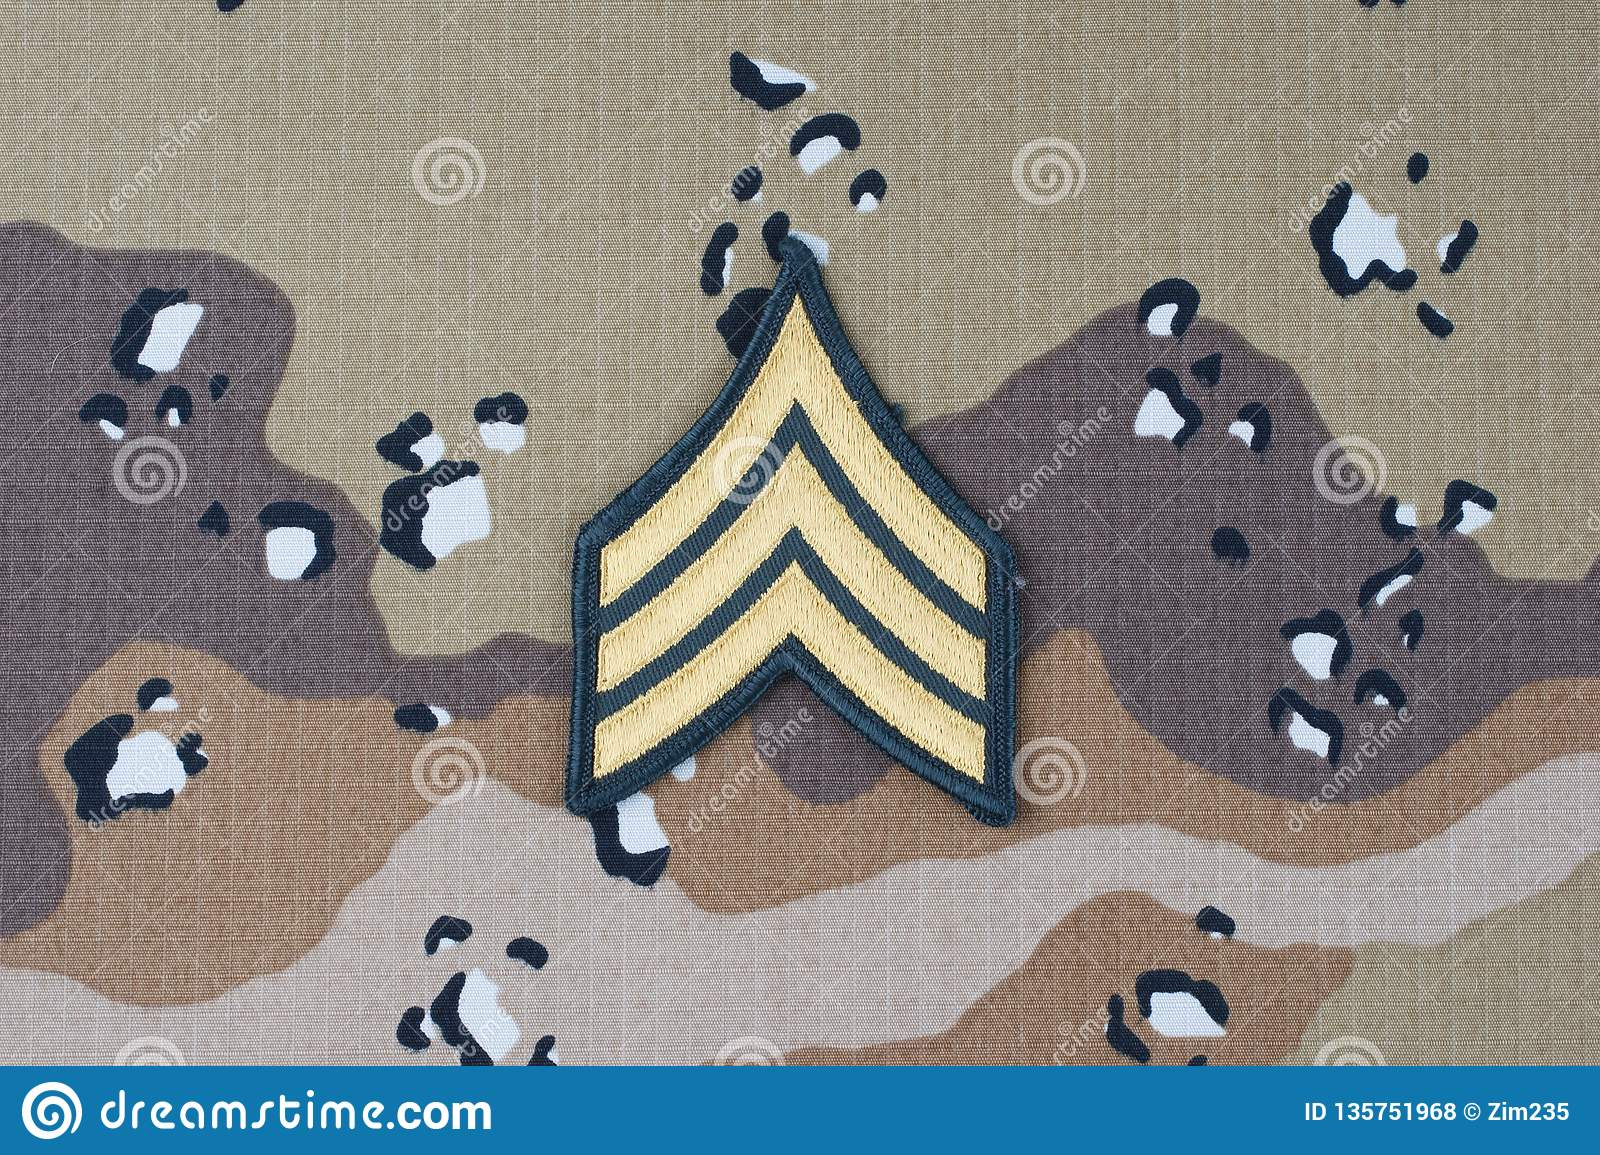 May 12, 2018. US ARMY Sergeant rank patch on desert camouflage uniform background